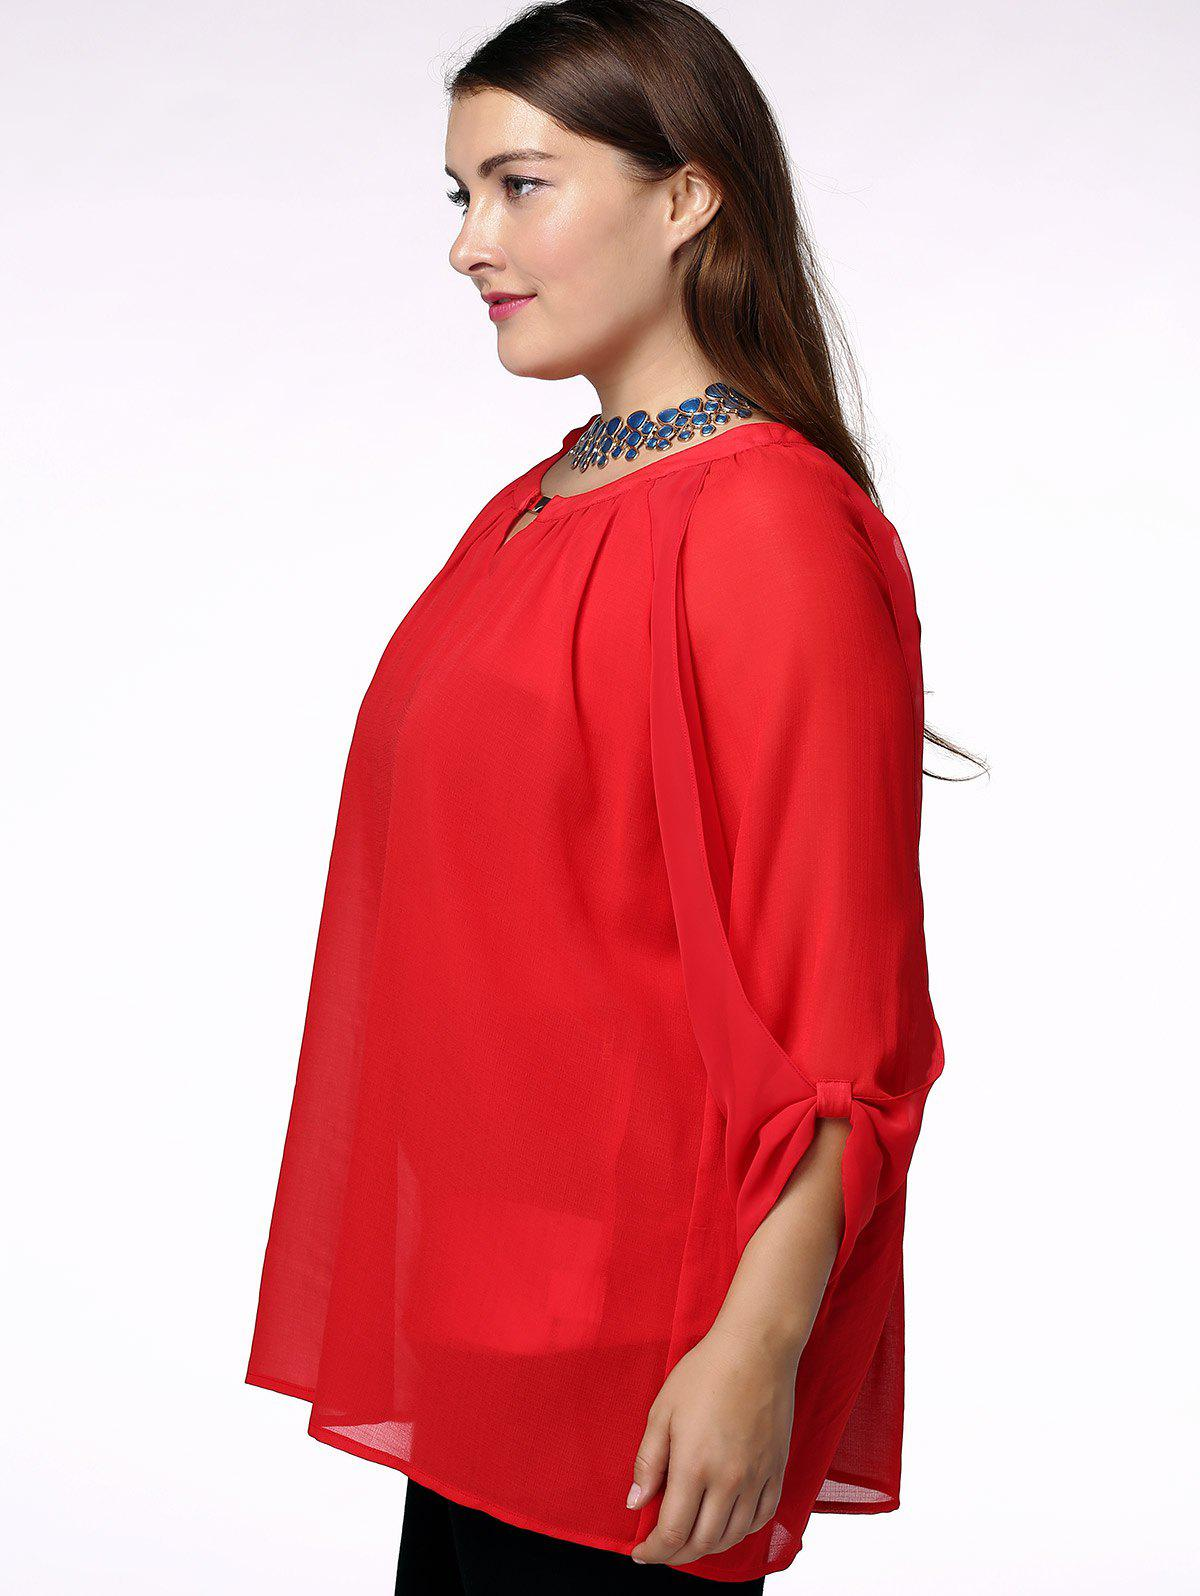 Fashionable Scoop Neck 3/4 Sleeve Pleated Red Blouse For Women - RED XL